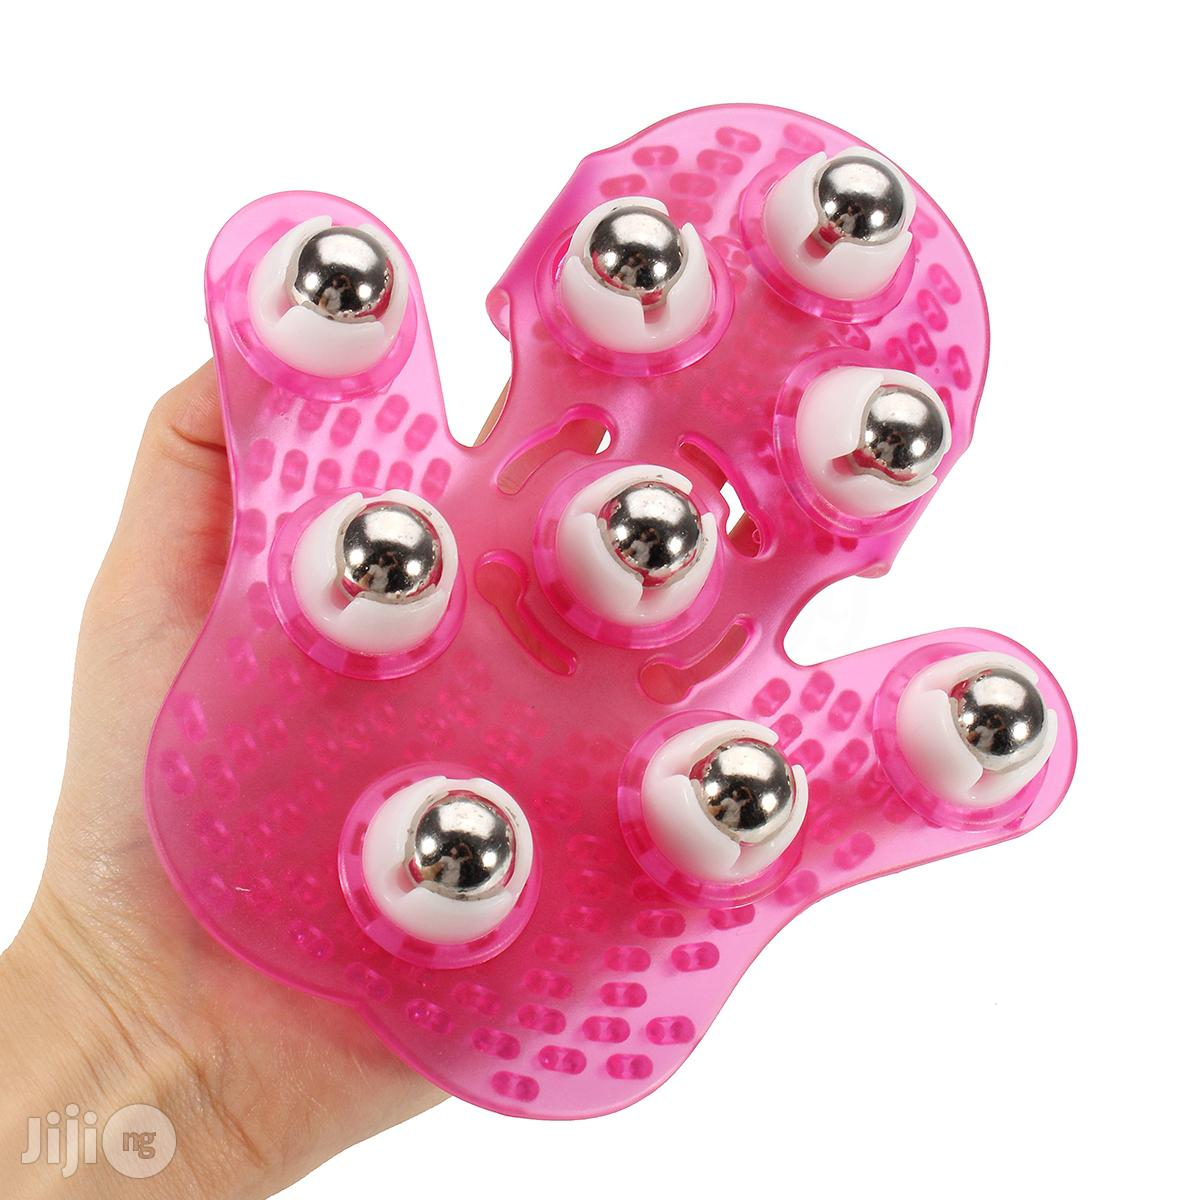 Body Care Massage Glove | Tools & Accessories for sale in Surulere, Lagos State, Nigeria